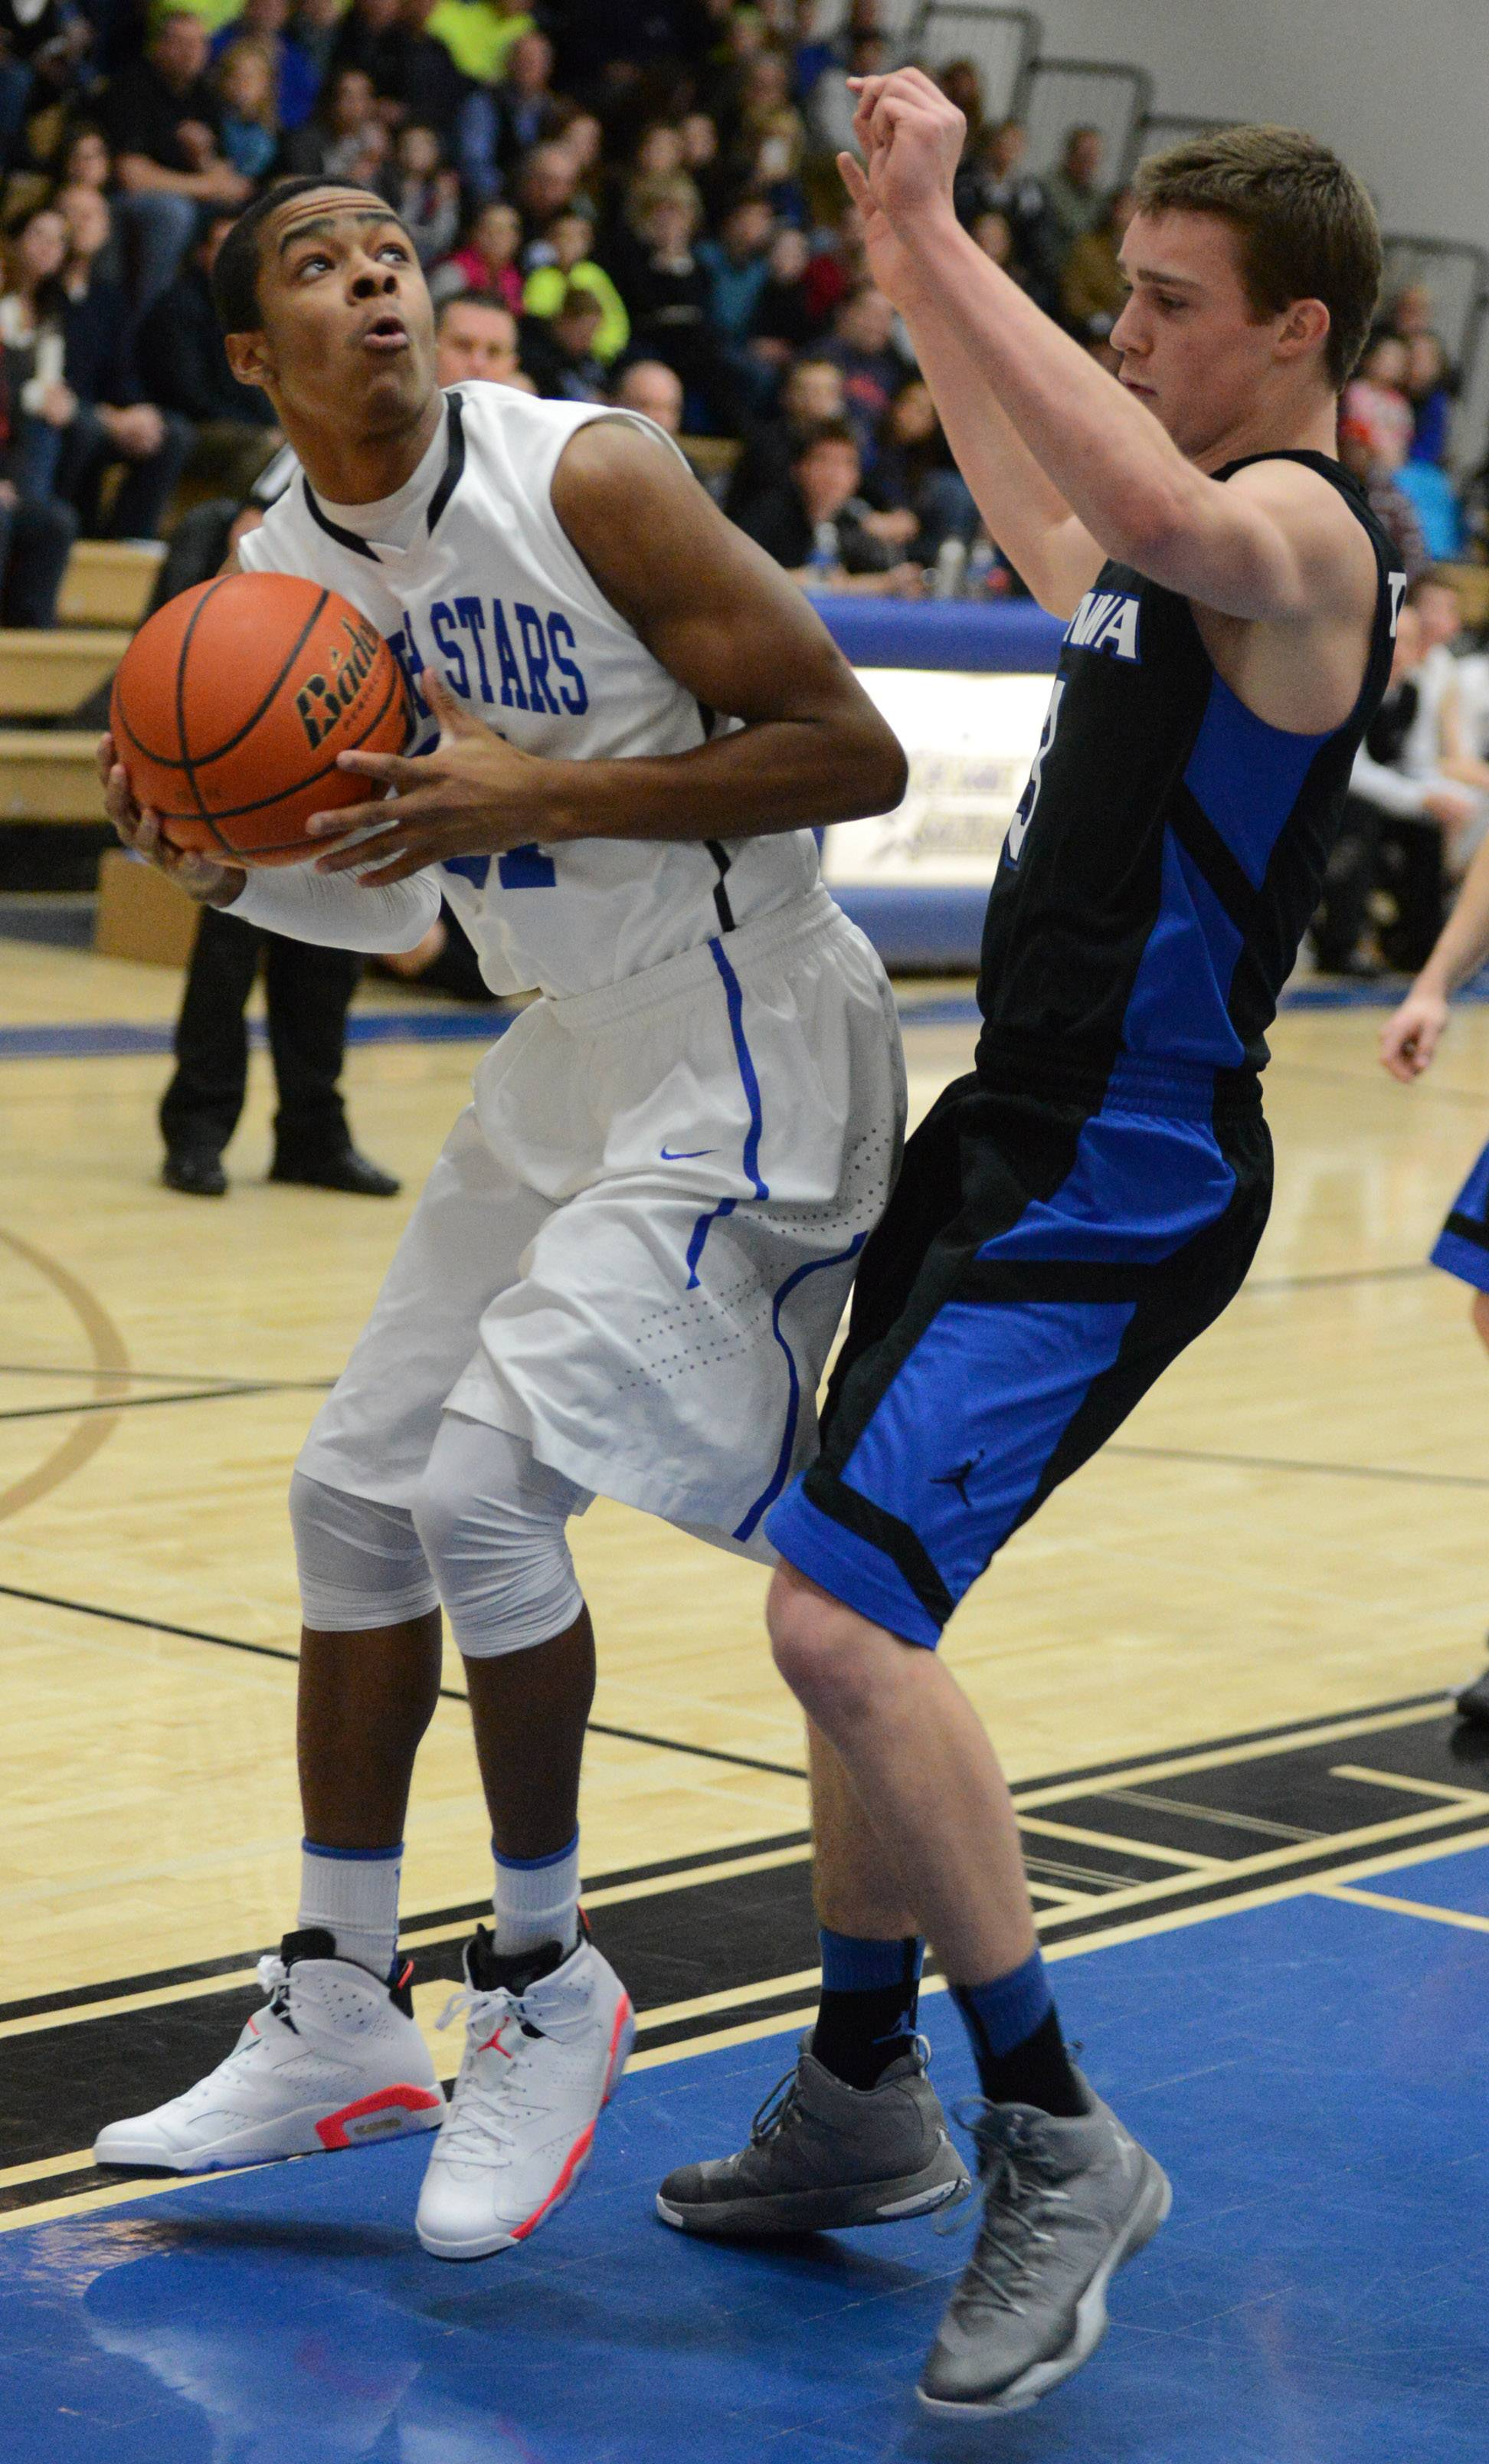 Images from the Geneva at St. Charles North boys basketball game Friday, February  21, 2014 in St. Charles.